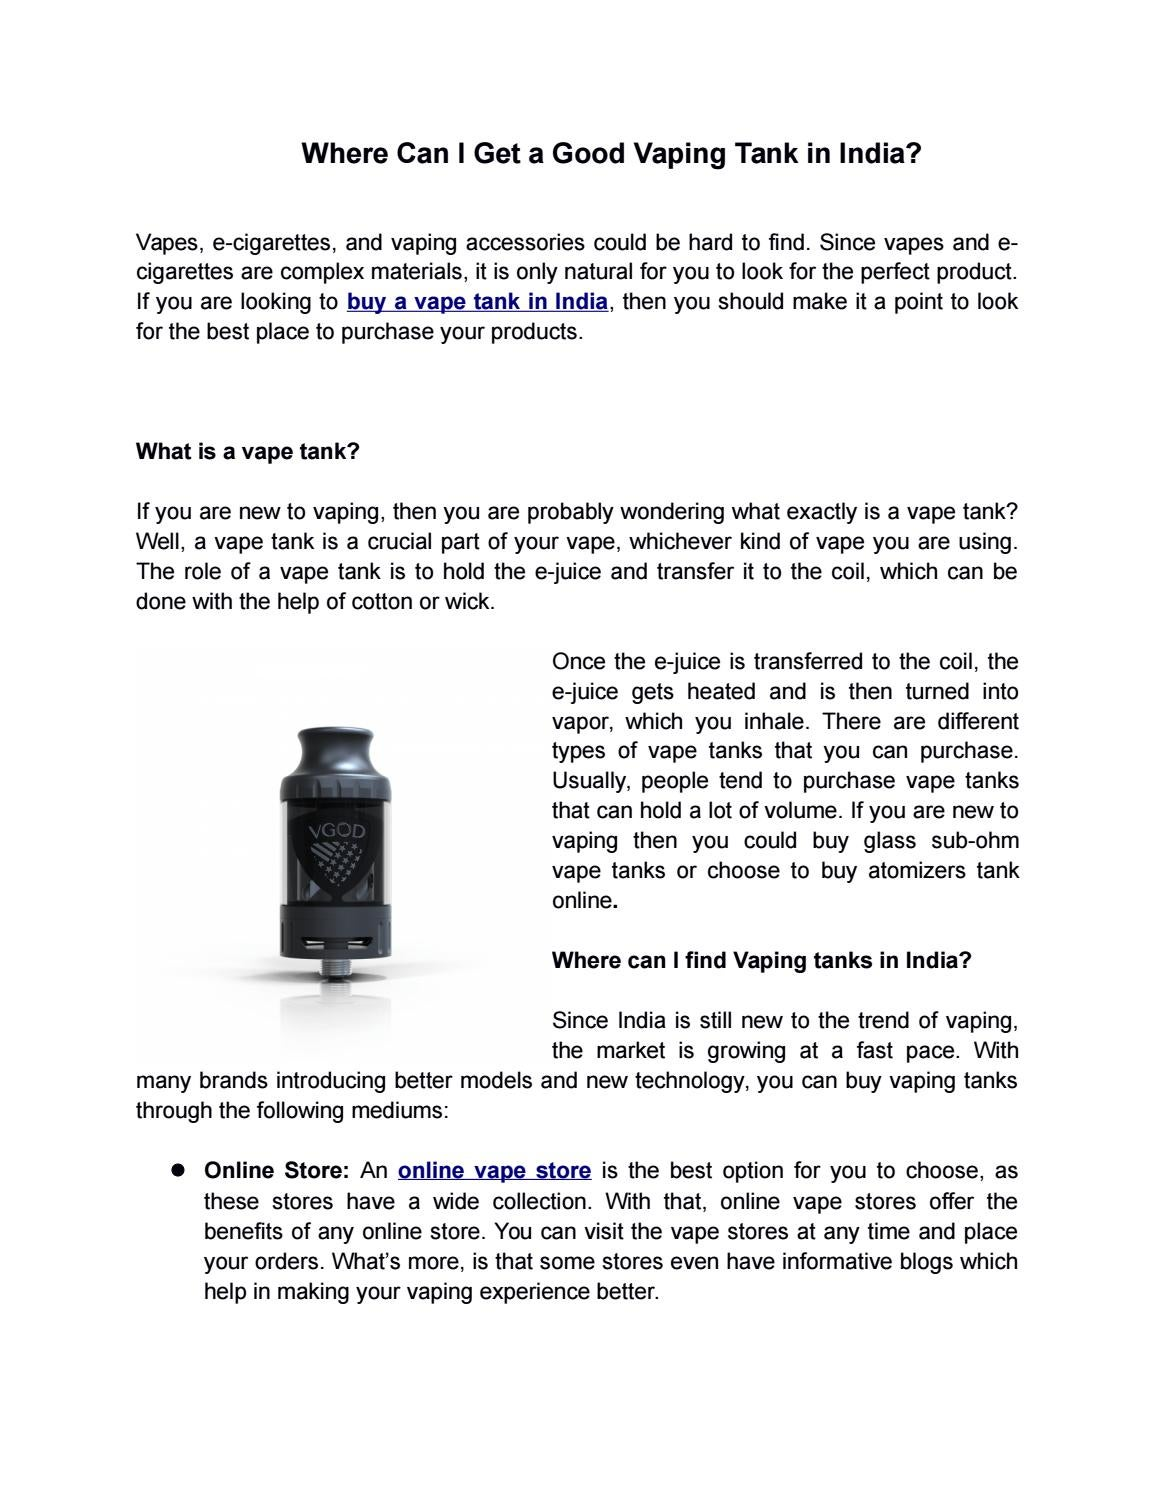 Where Can I Get a Good Vaping Tank in India? by Faheem